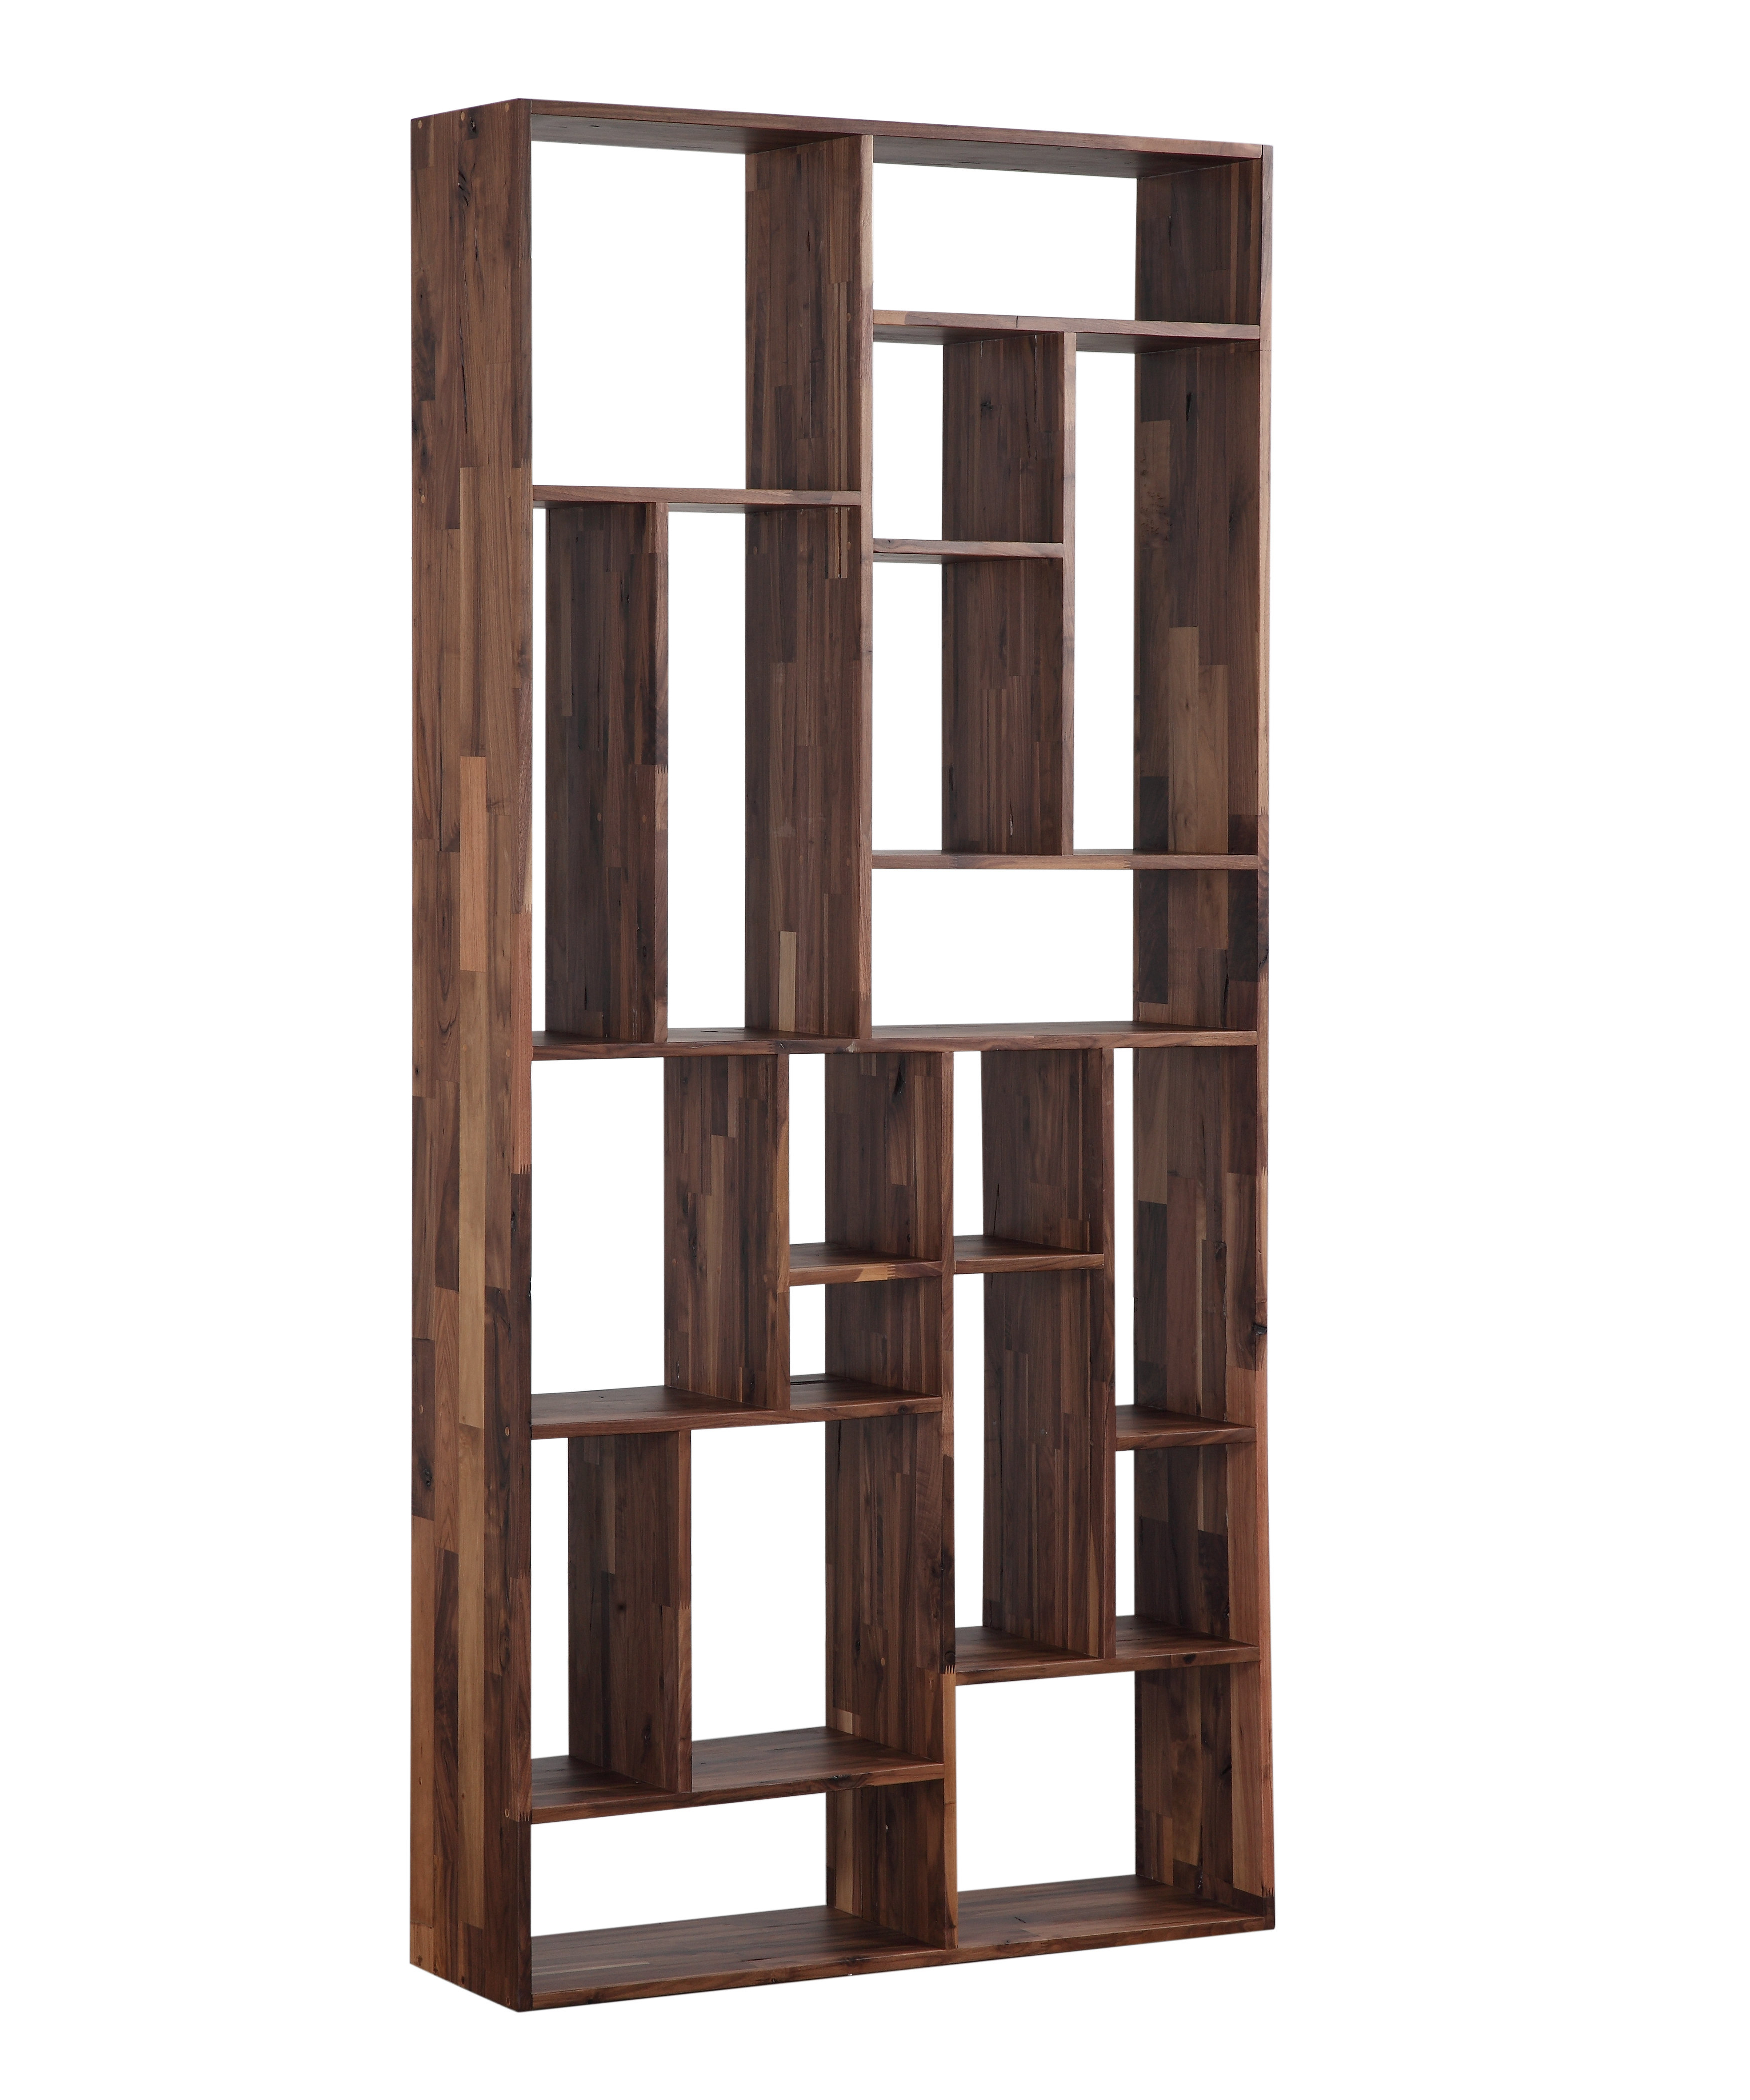 Blevens Geometric Bookcase Throughout Best And Newest Vaccaro Geometric Bookcases (Gallery 7 of 20)